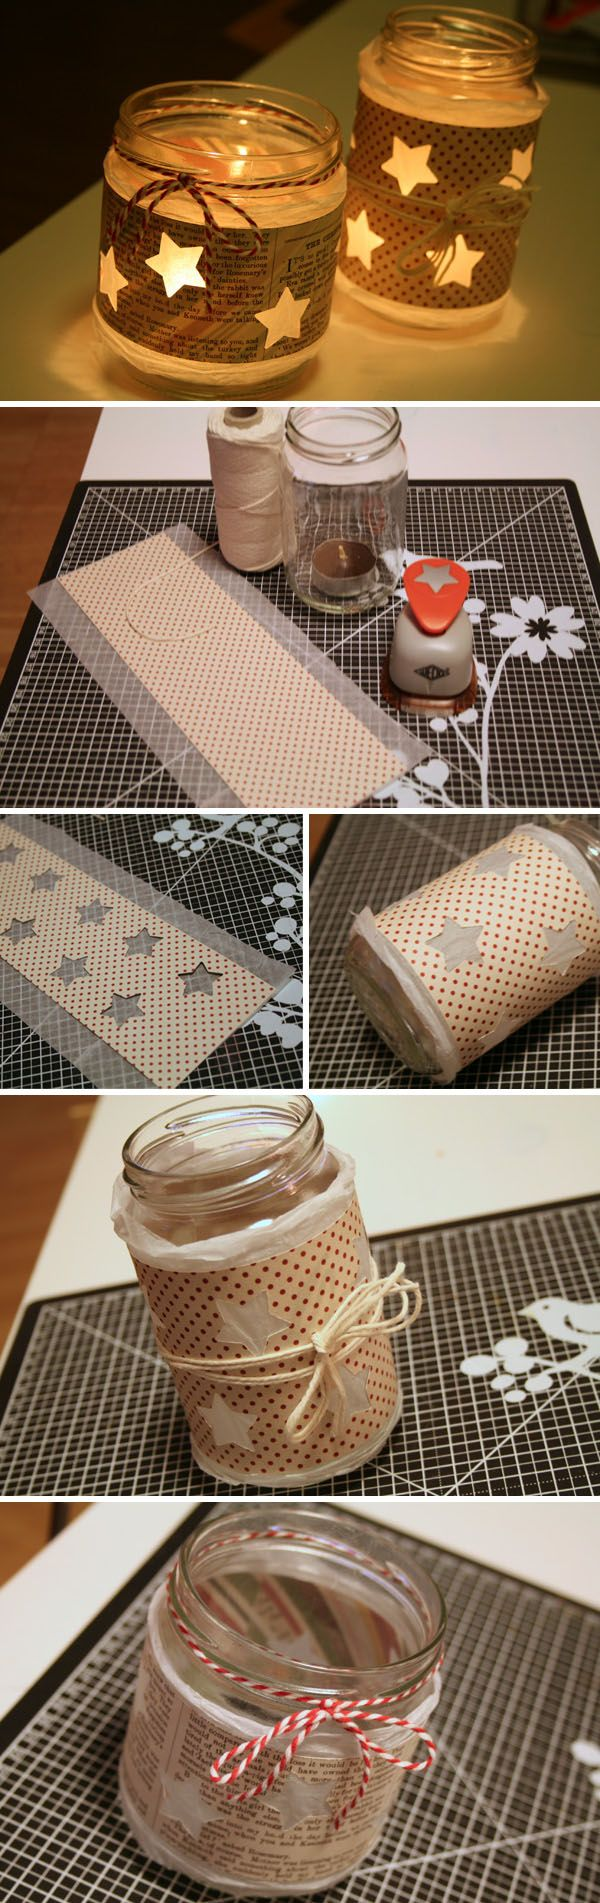 Easy DIY rustic and vintage manson jar candle light holders